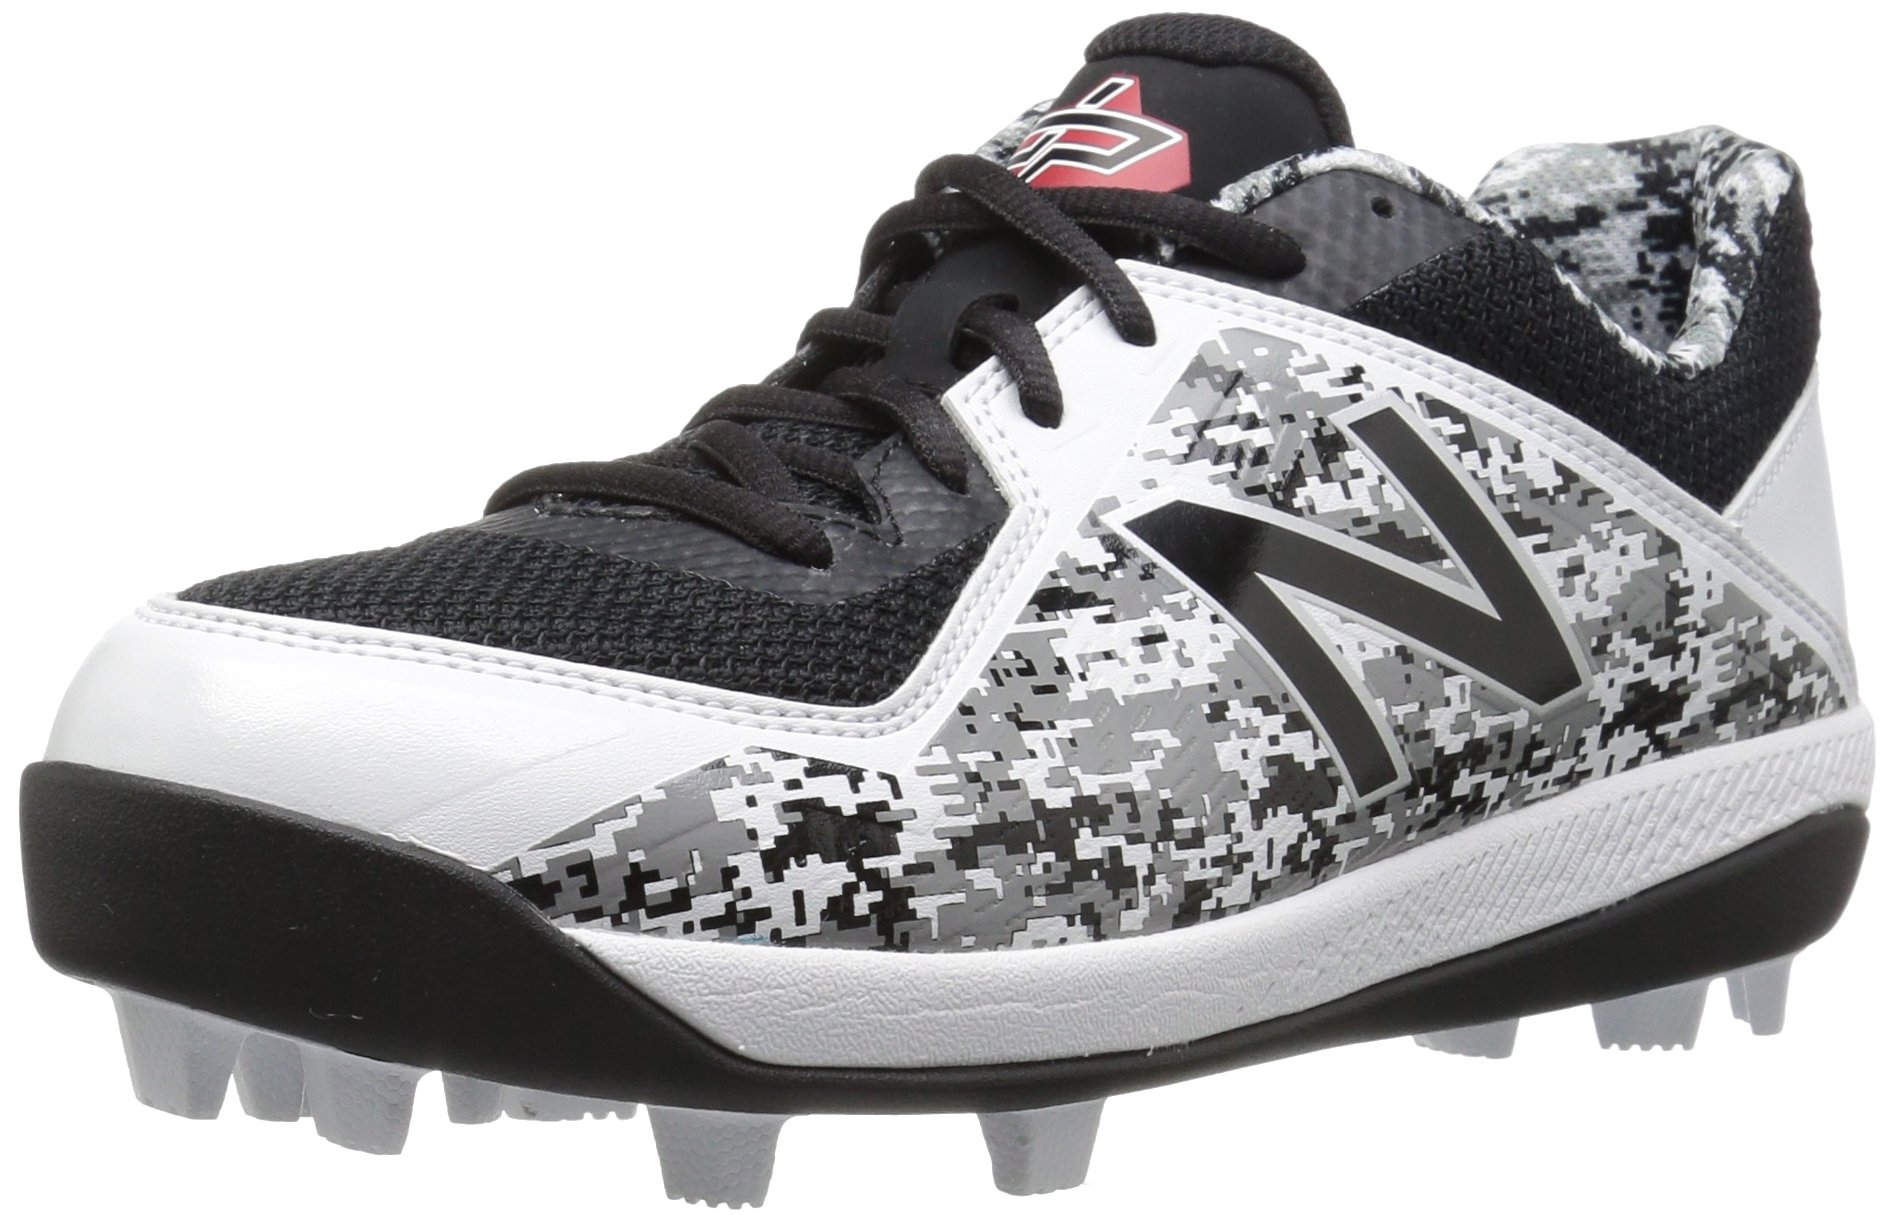 New Balance Boys' 4040v4, Black/Camo, 12.5 W US Little Kid by New Balance